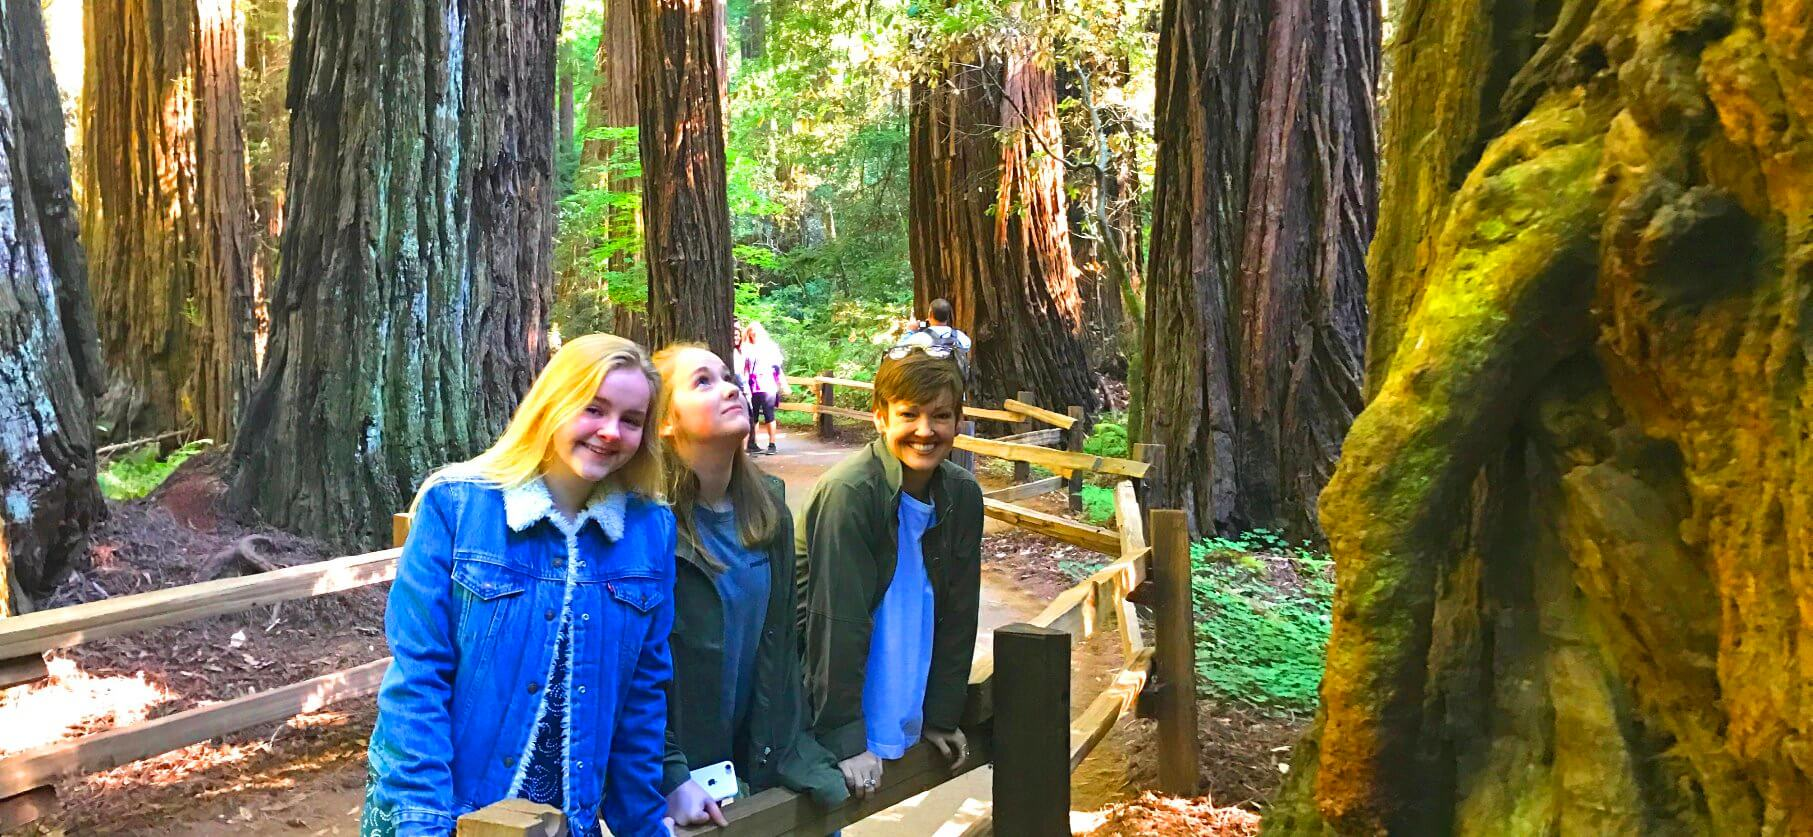 day_trips_to_muir_woods_national_monument_from_san_francisco_private_tours